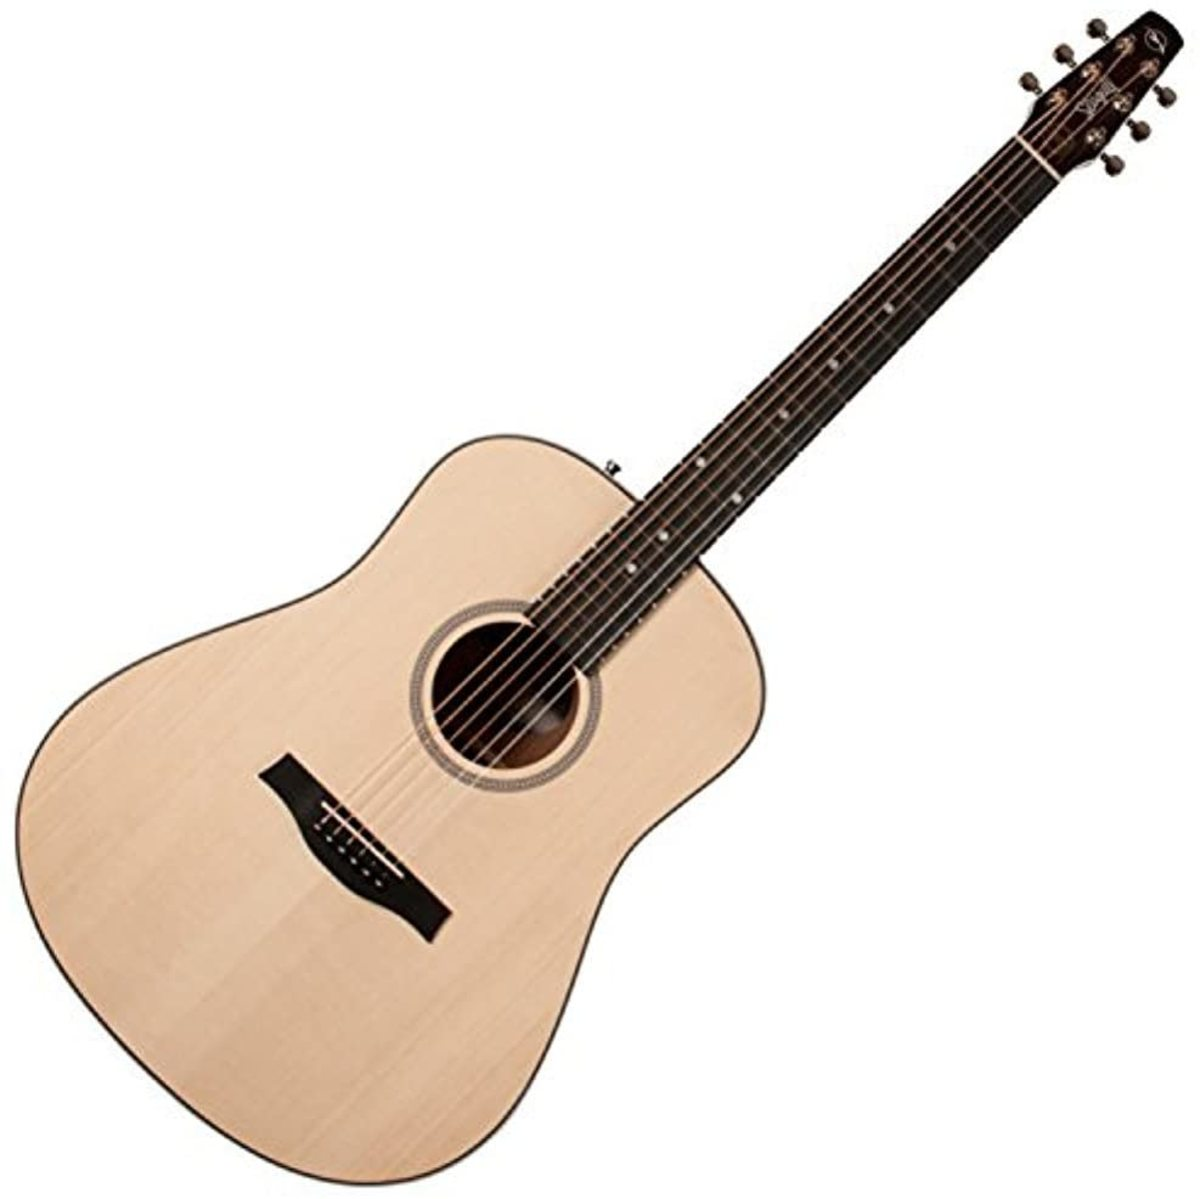 10 Best Acoustic Guitars Under $1000 in 2020